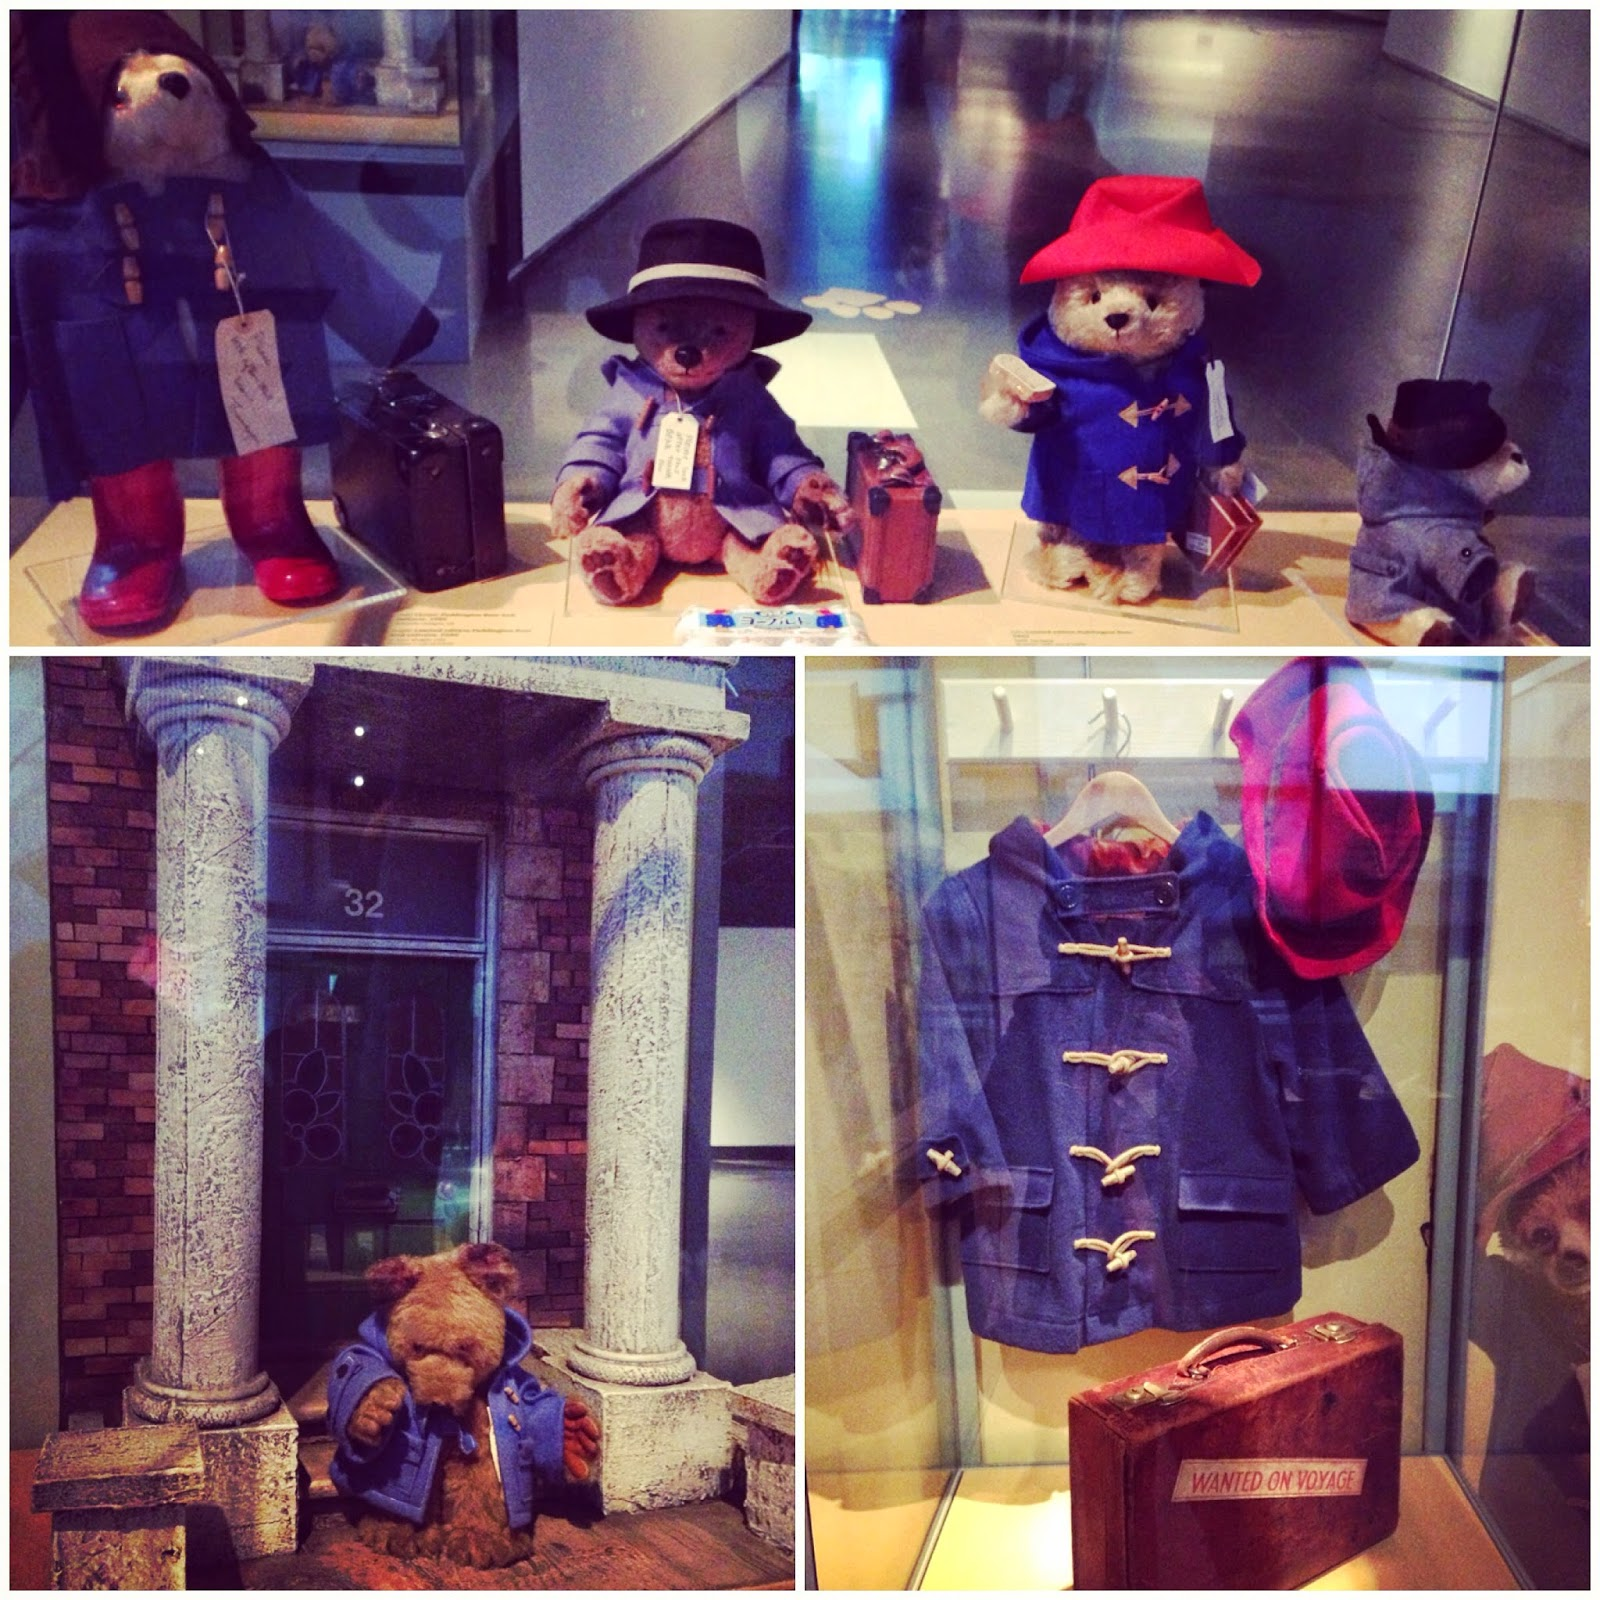 Museum of London Paddington Bear